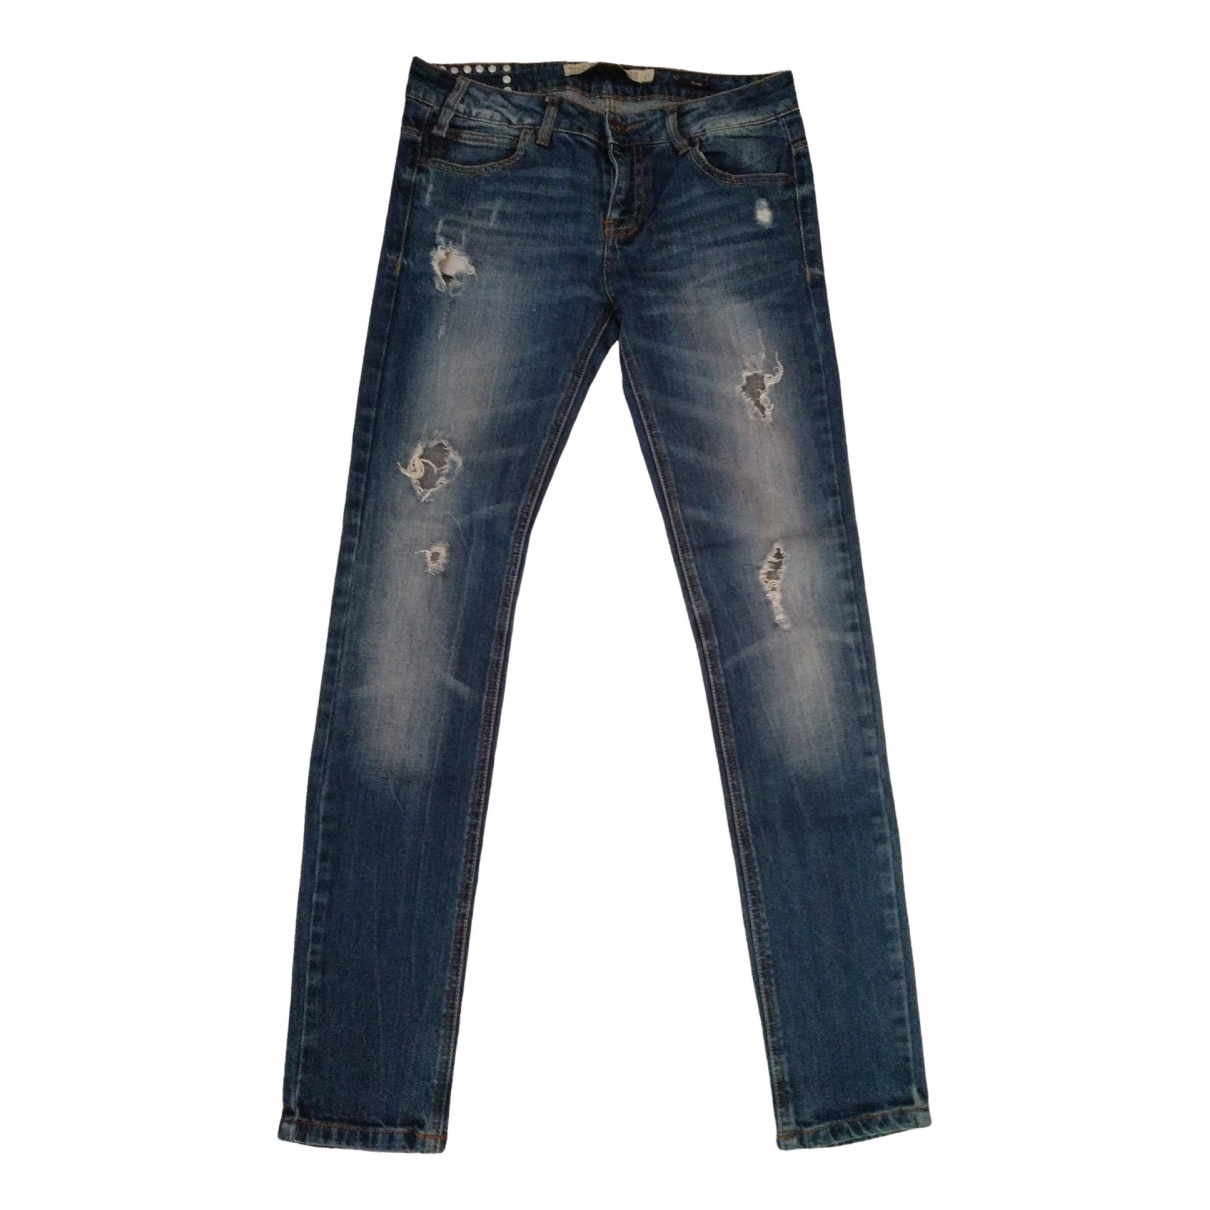 Zara \N Blue Cotton - elasthane Jeans for Women 26 US